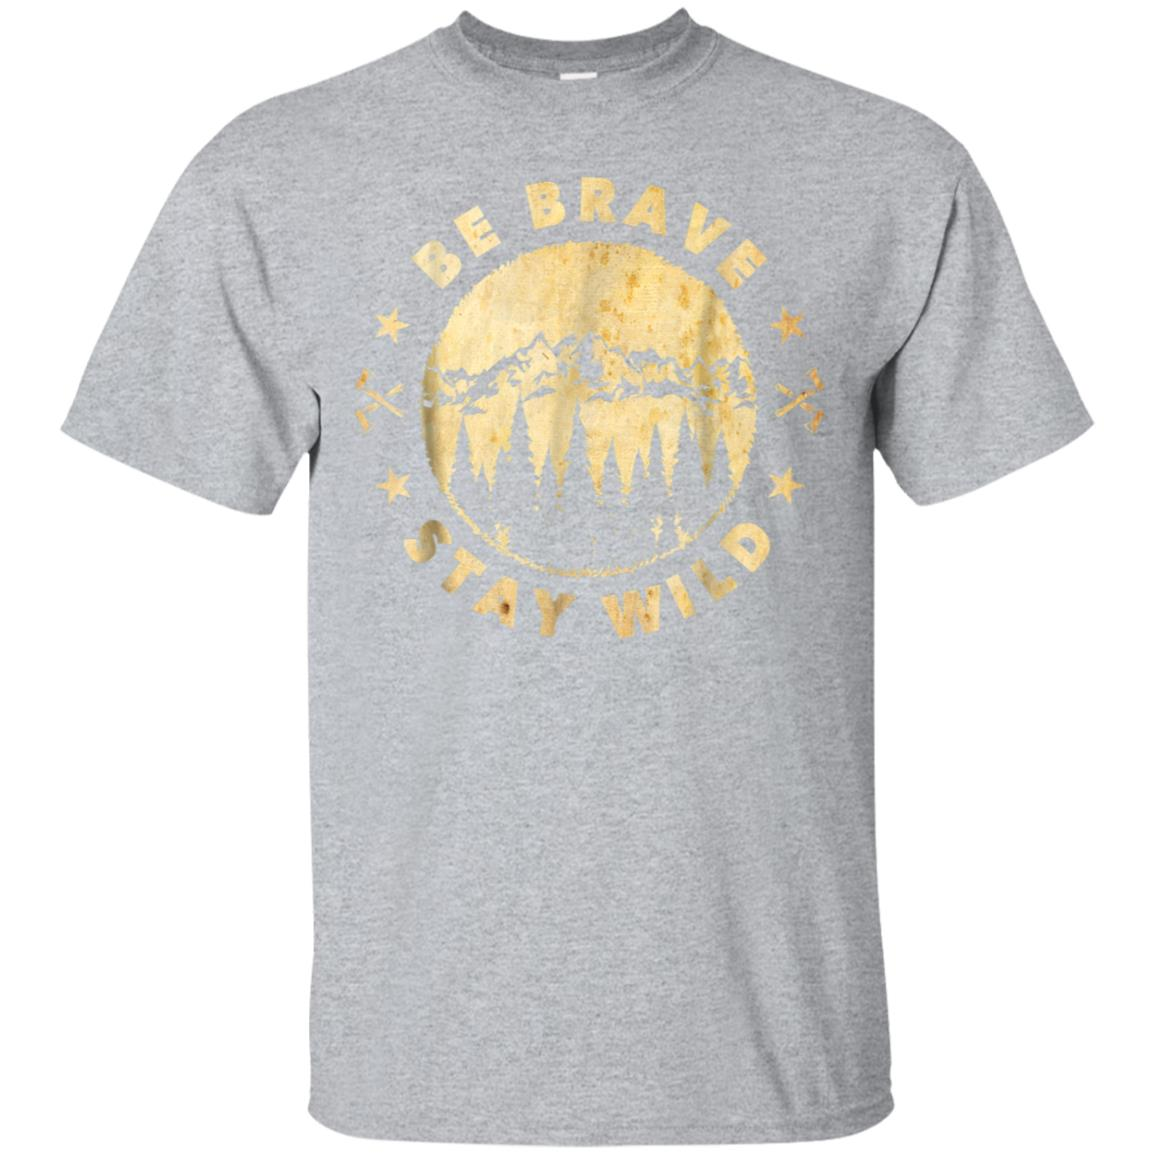 Be Brave Stay Wild - Outdoors T-Shirt 99promocode